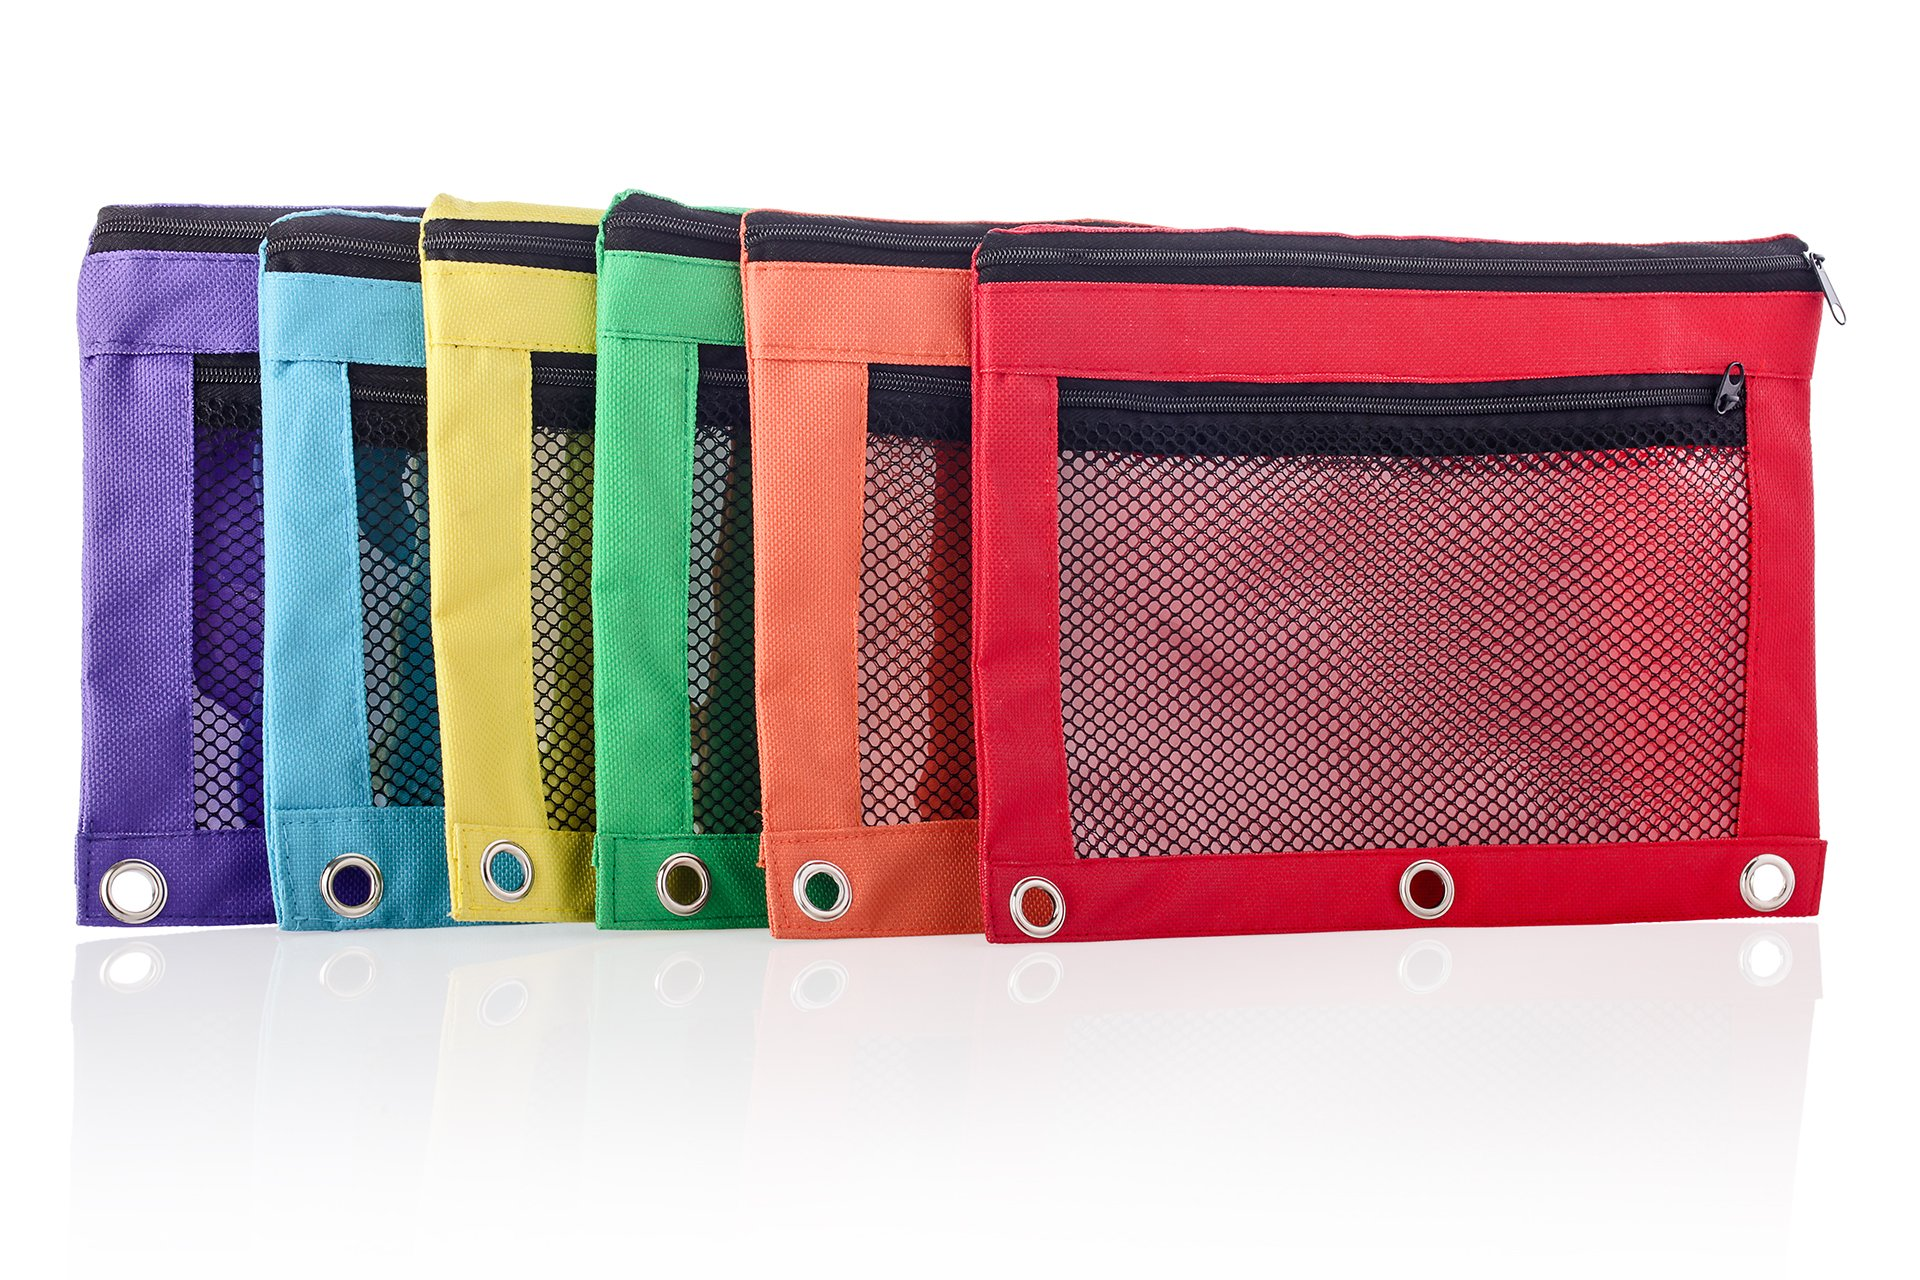 Pencil Bag with Zipper for Kids & Adults by Boona|3 Ring Binder Pouch for Fountain Pens|2 Compartments & Mesh Window|Canvas Organizer|Art Marker & Crayon Carrying Pouch|Washable (5 Pack of 6 colors)